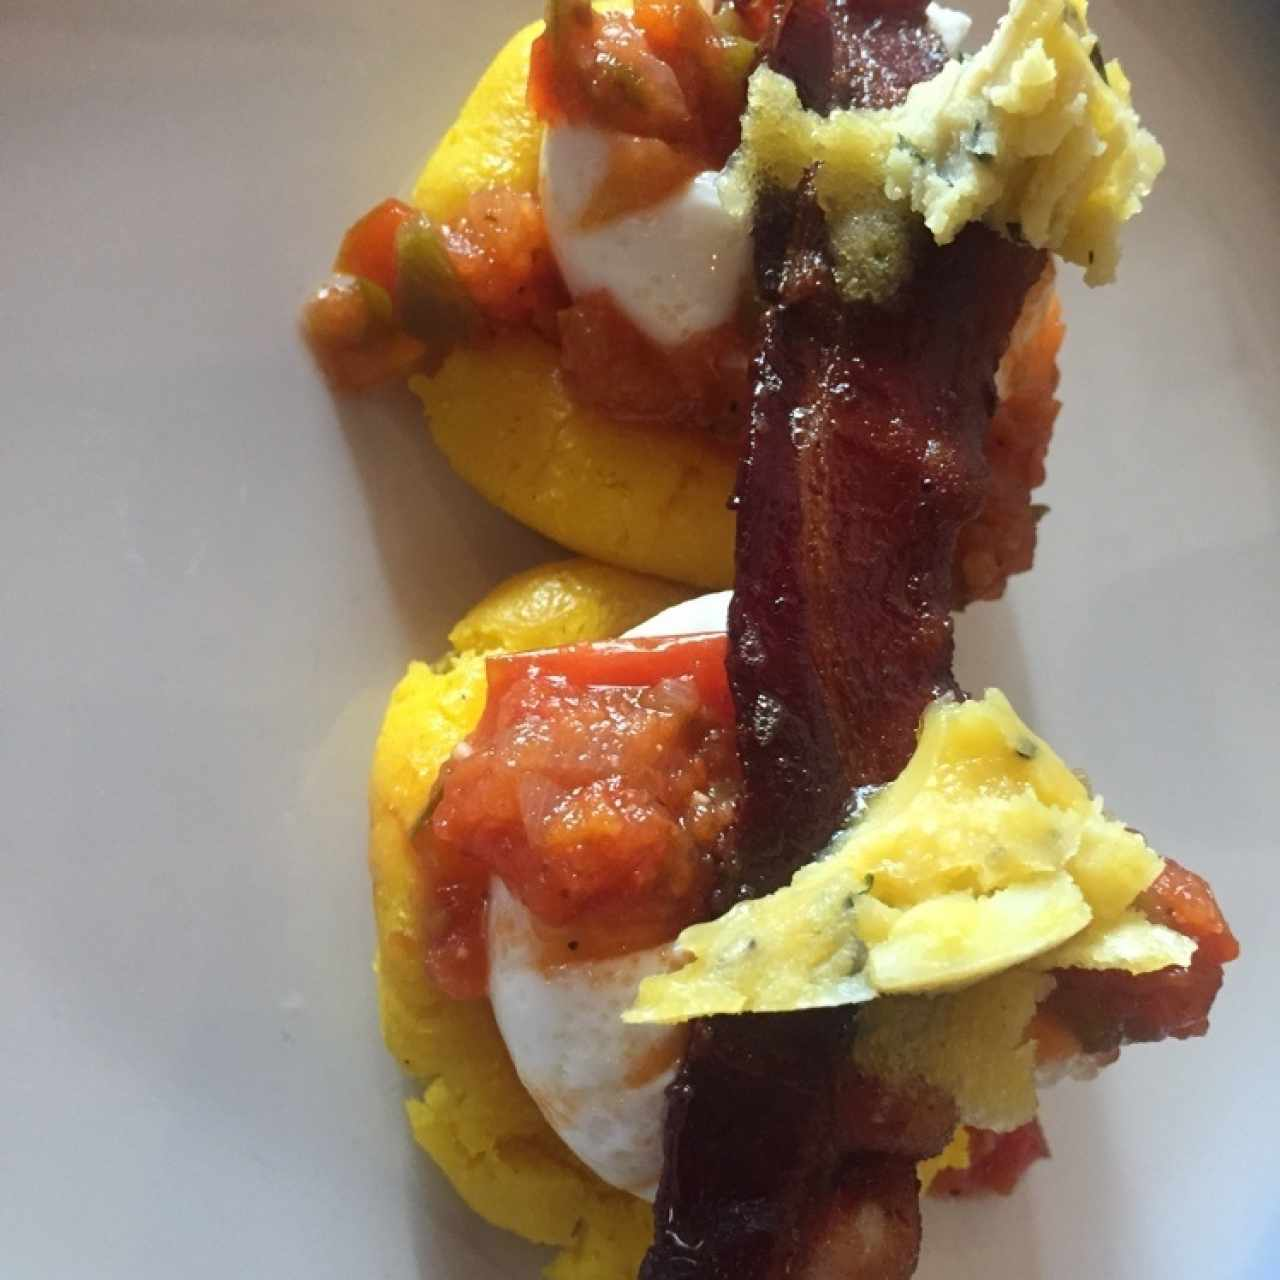 huevos escalfados sobre changa y bacon